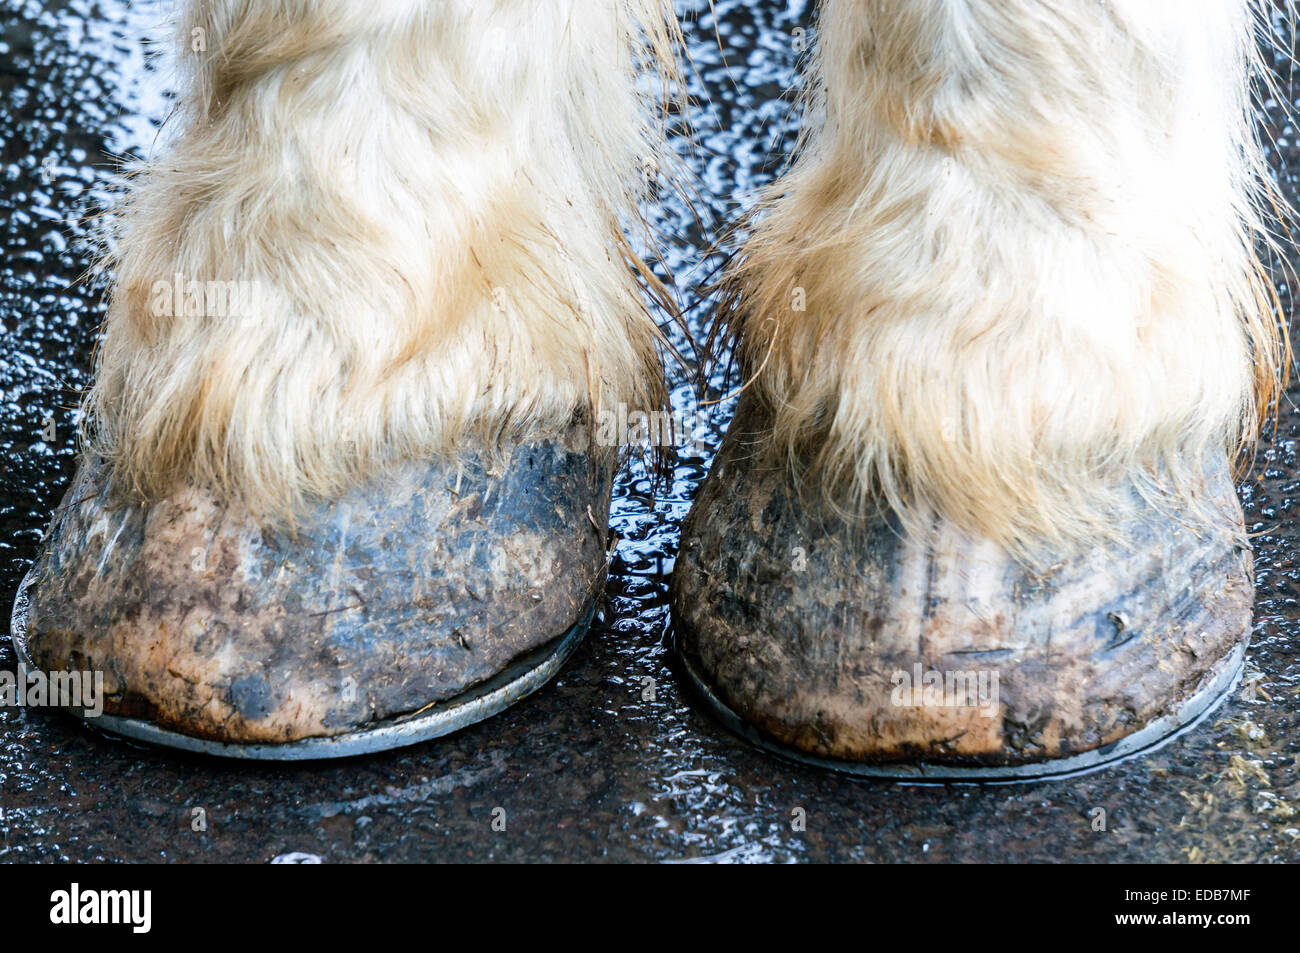 Shod hooves and white pasterns of an old draft horse standing on wet pavement. - Stock Image